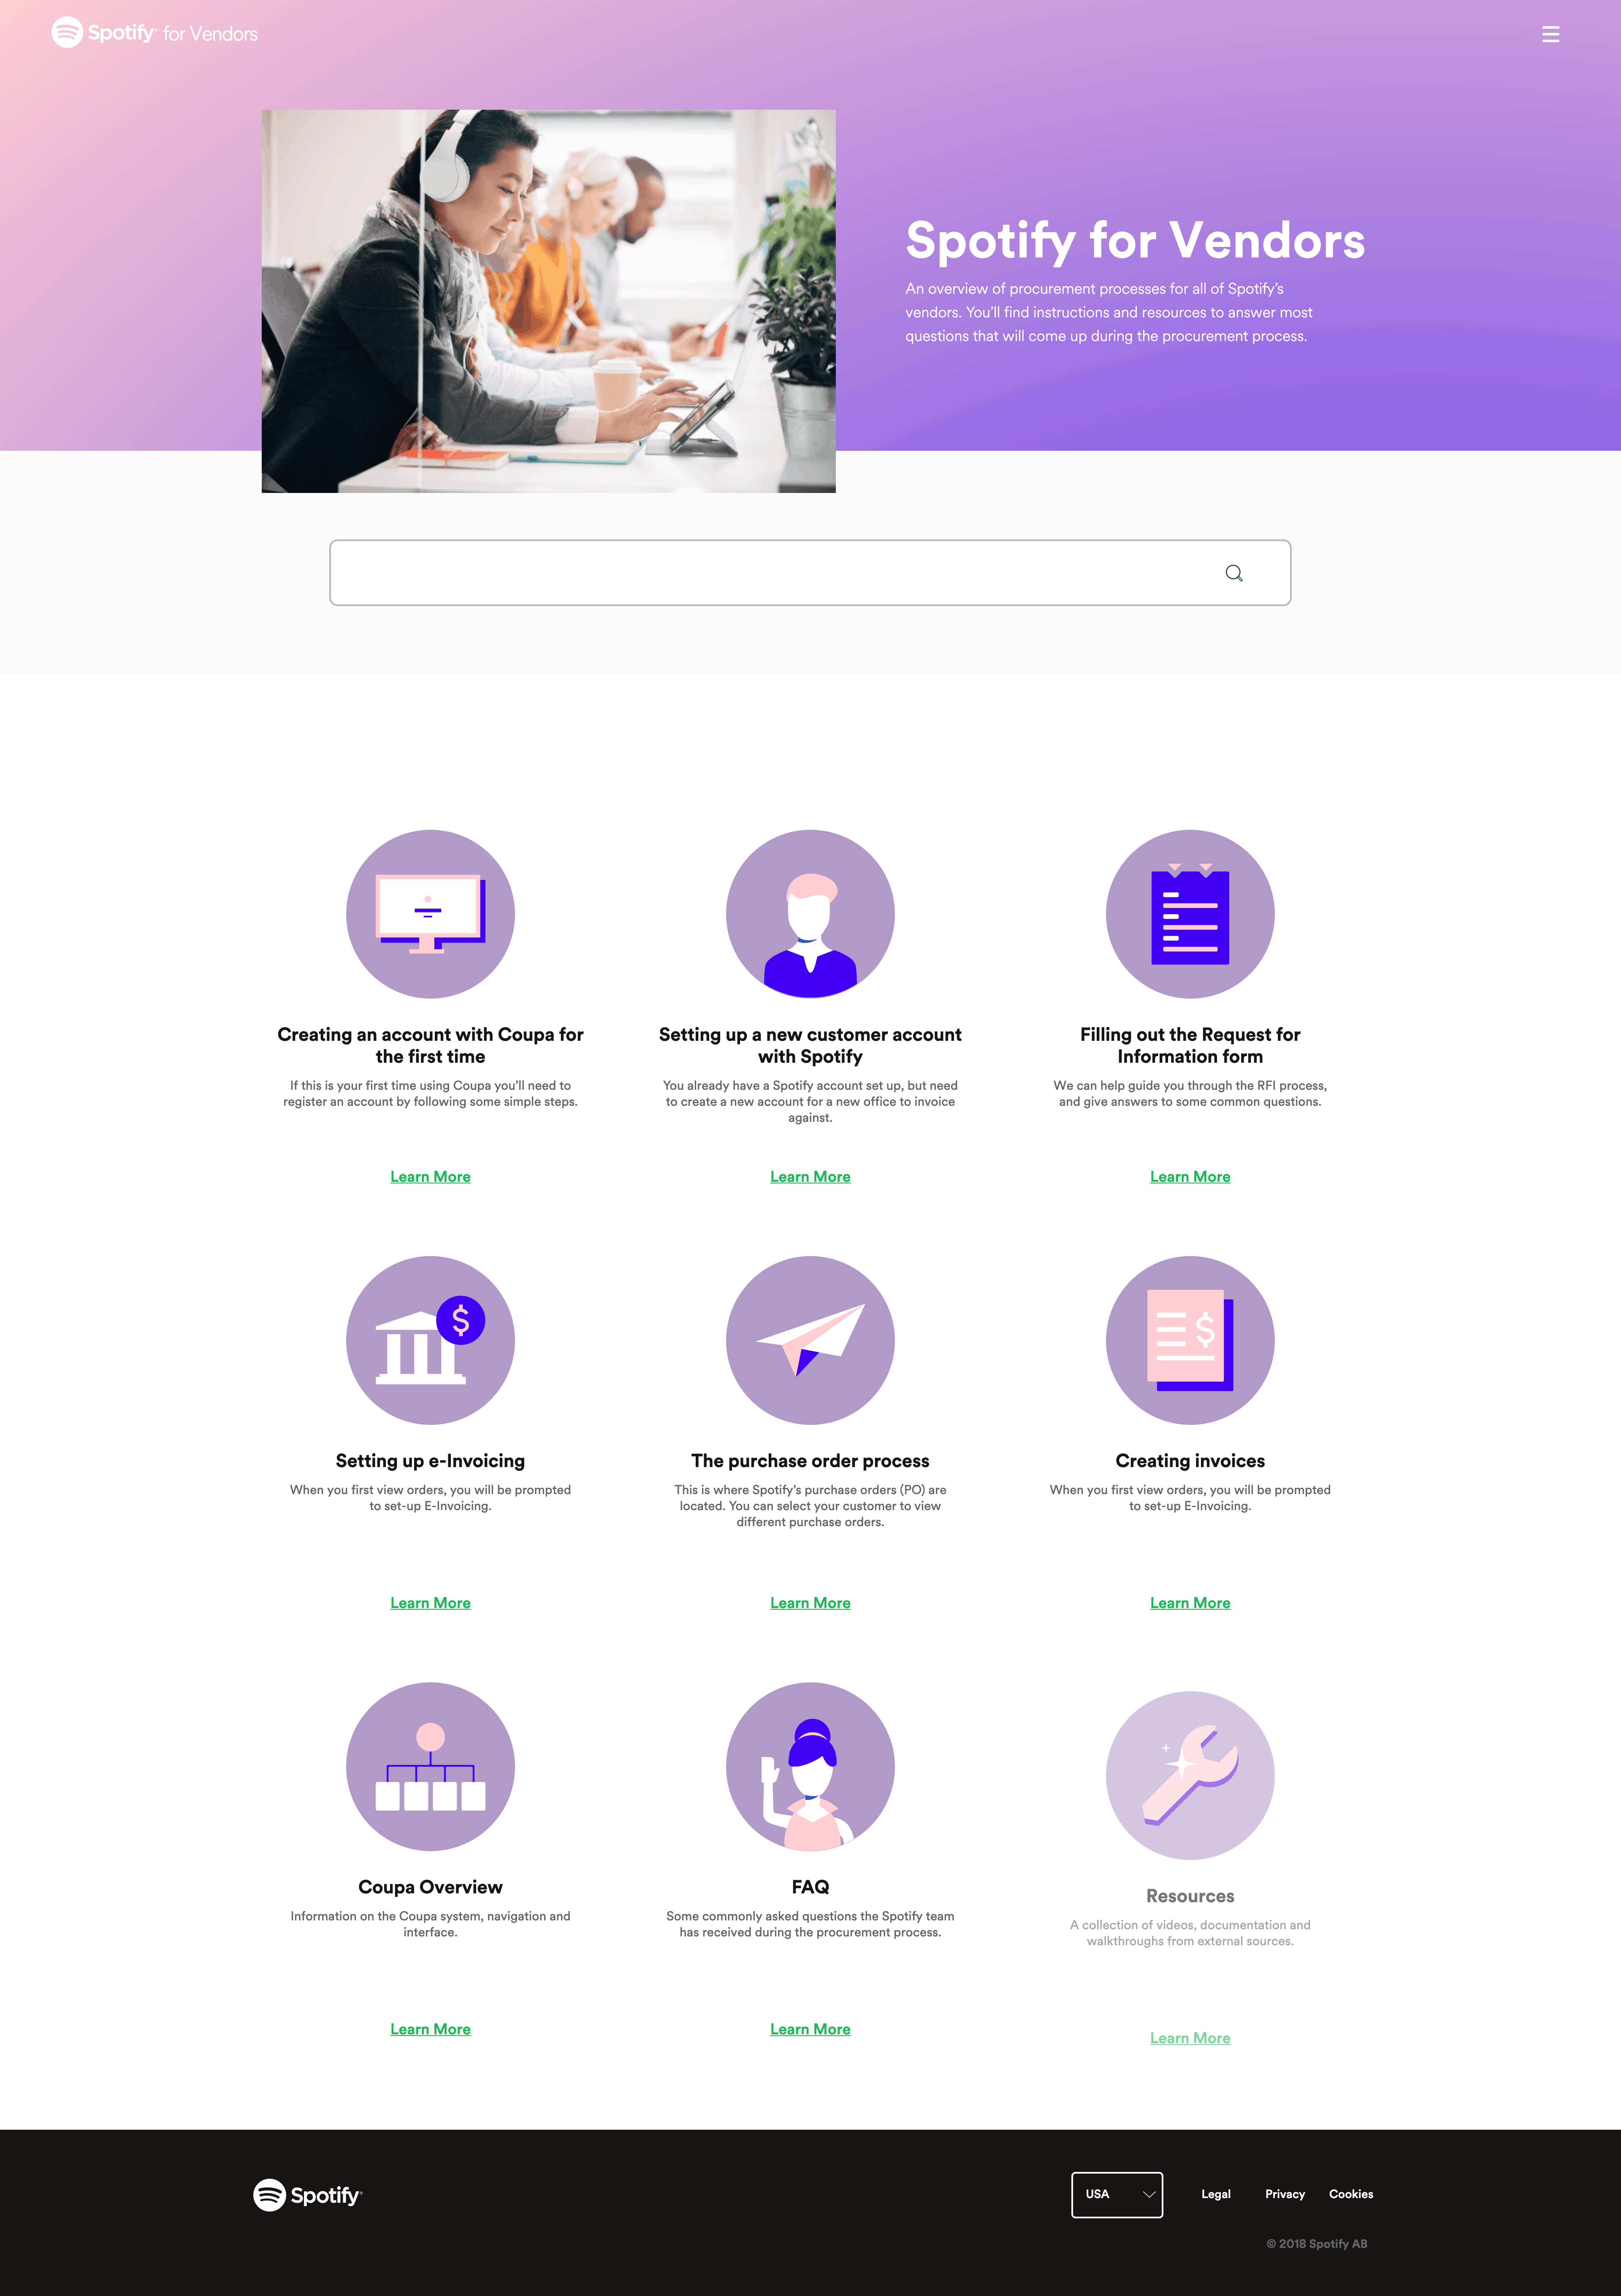 Homepage by Spotify for Vendors